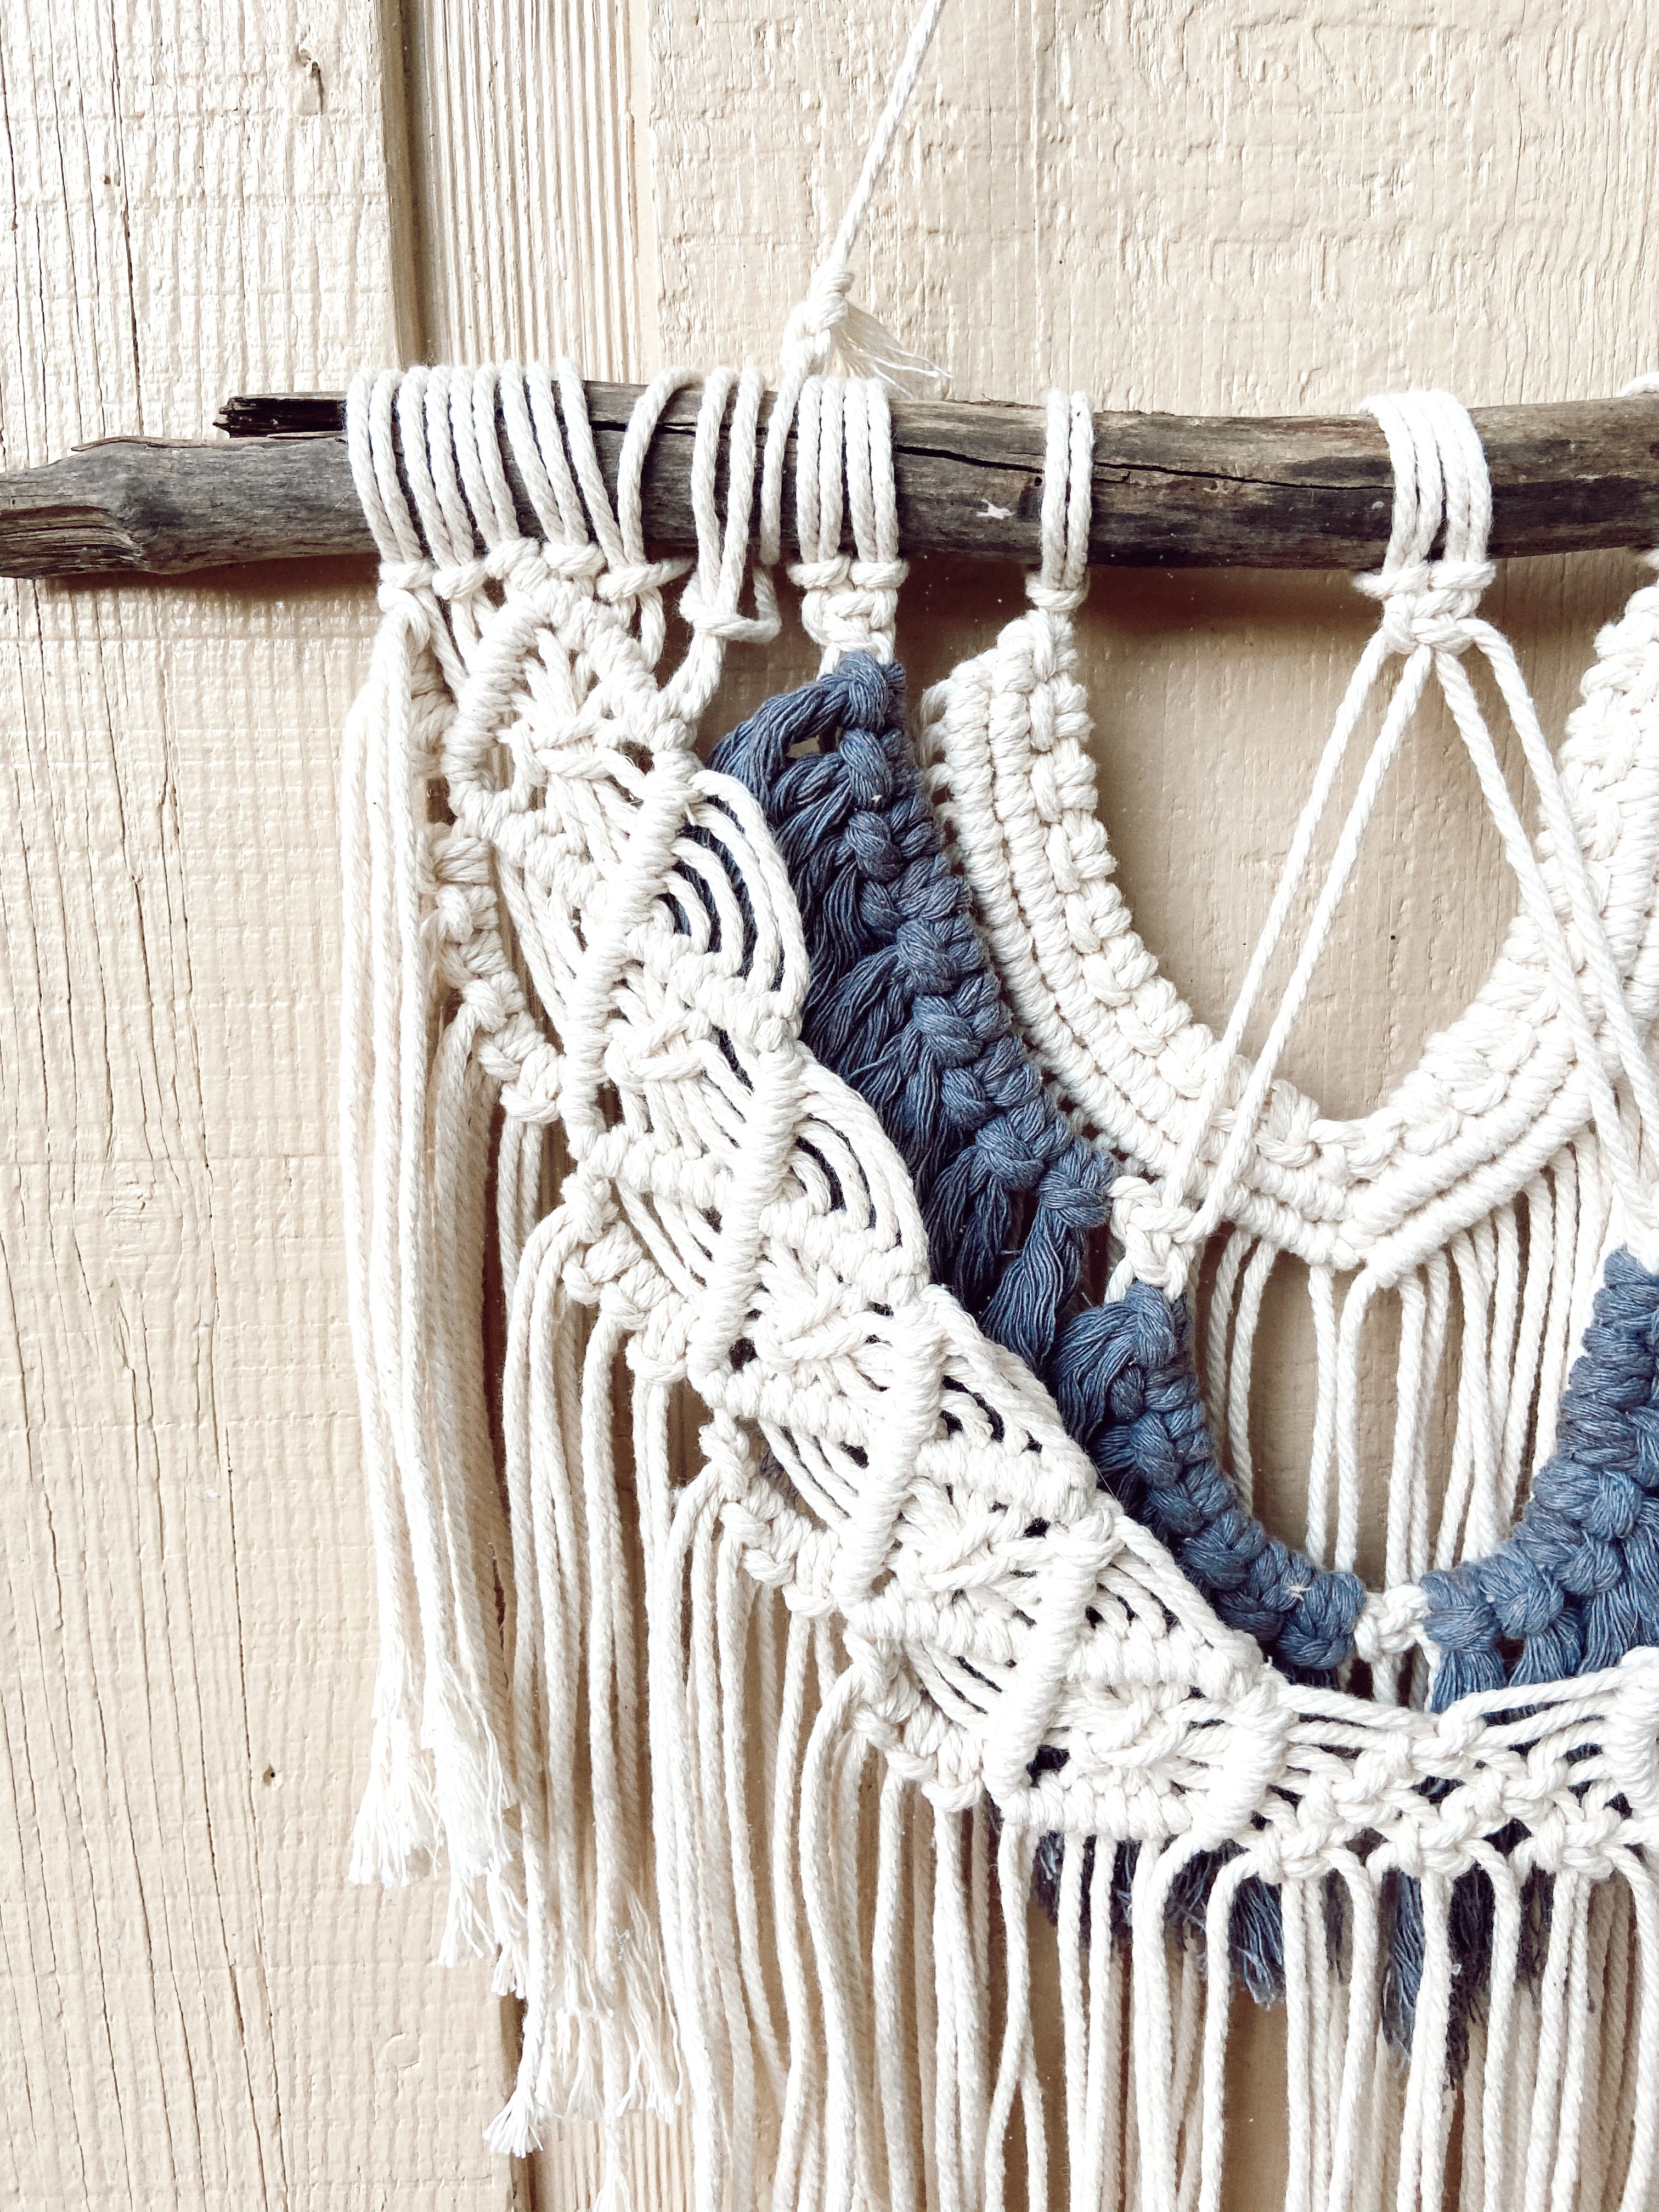 Layered Macrame Wall Hanging with Black